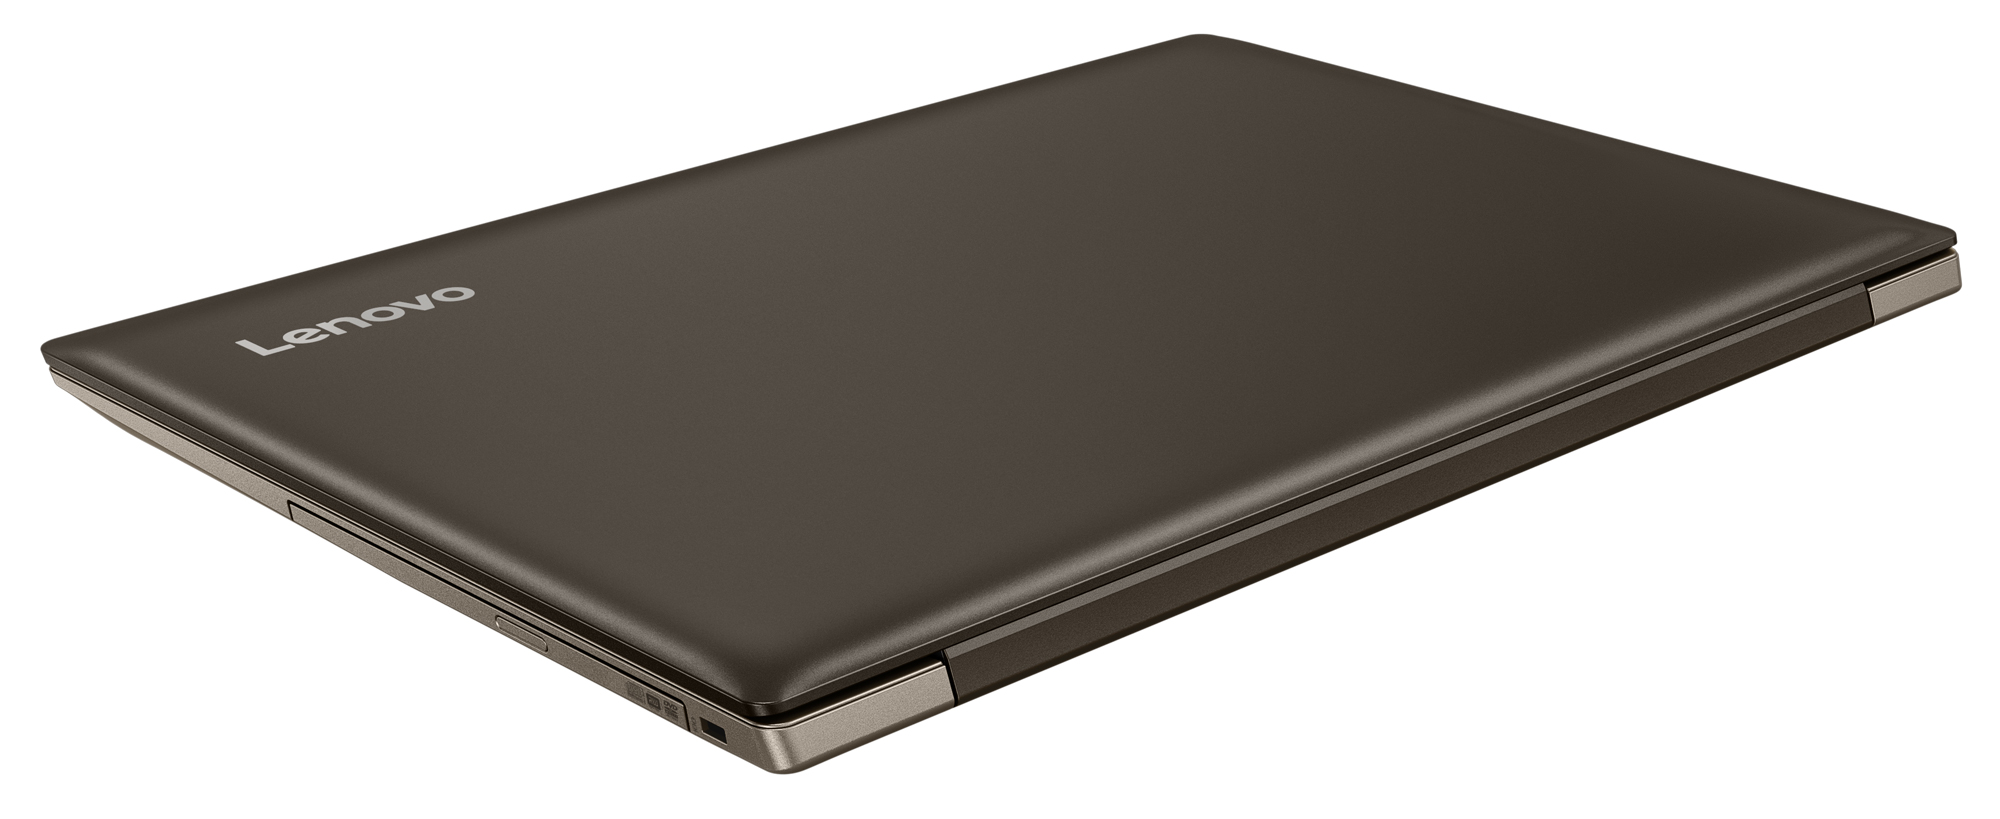 Фото  Ноутбук Lenovo ideapad 330-15 Chocolate (81D100CSRA)